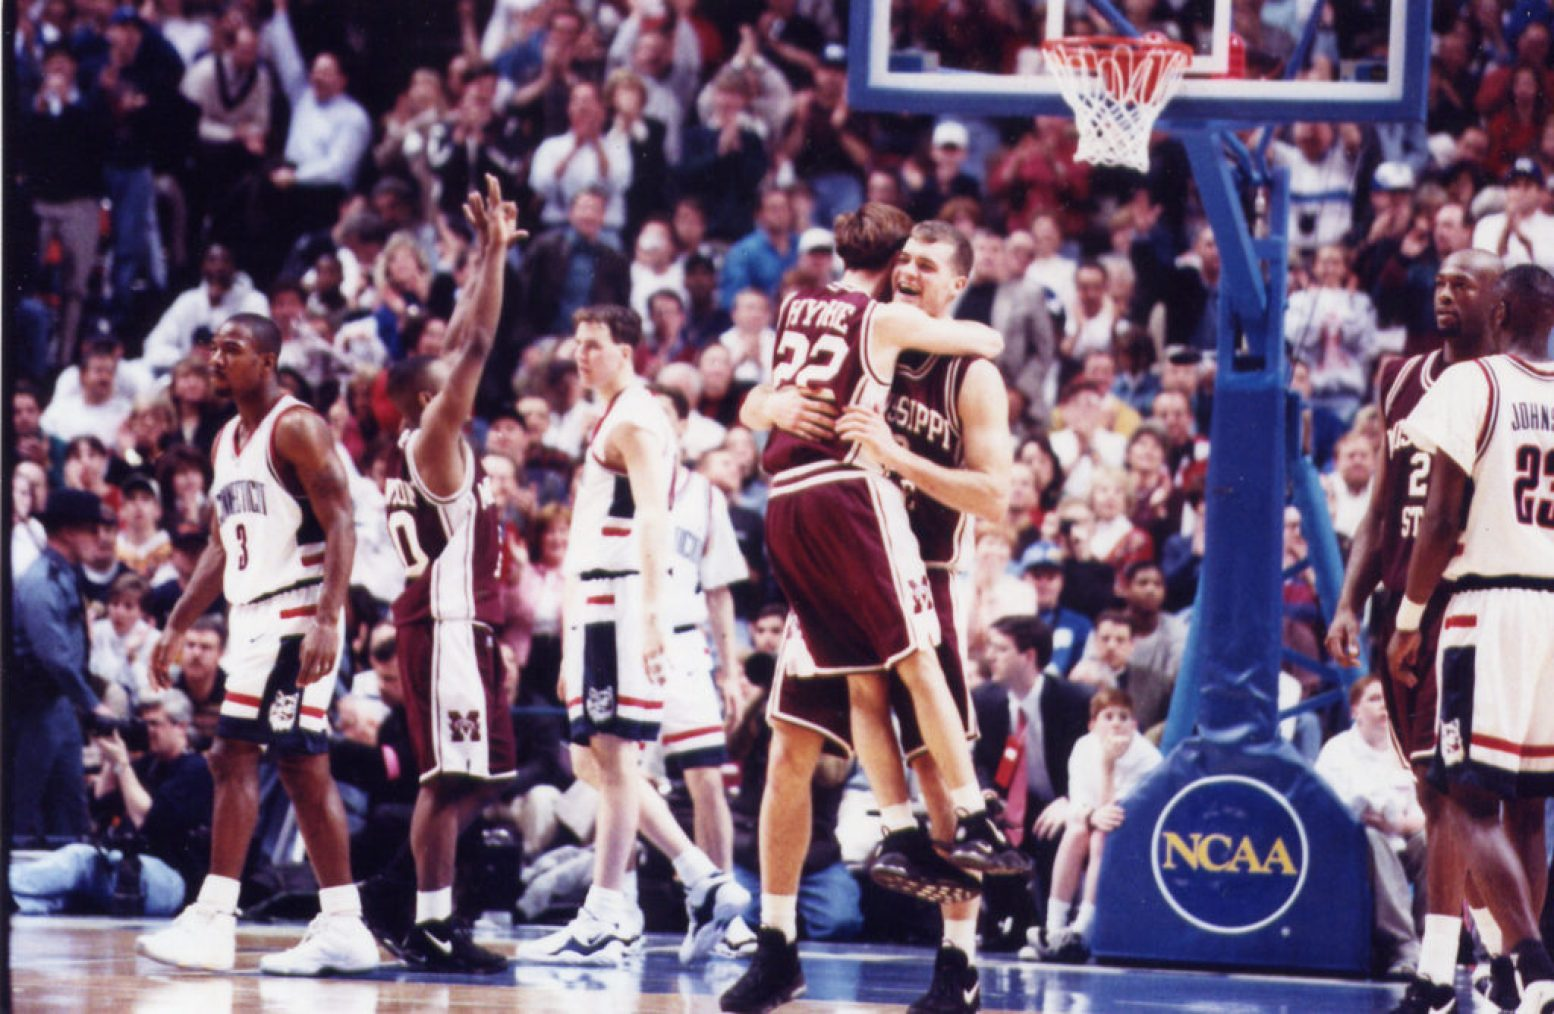 When Mississippi State defeated Cincinnati to go to the Final Four, Bart Hyche jumped into the arms of teammate Russell Walters.